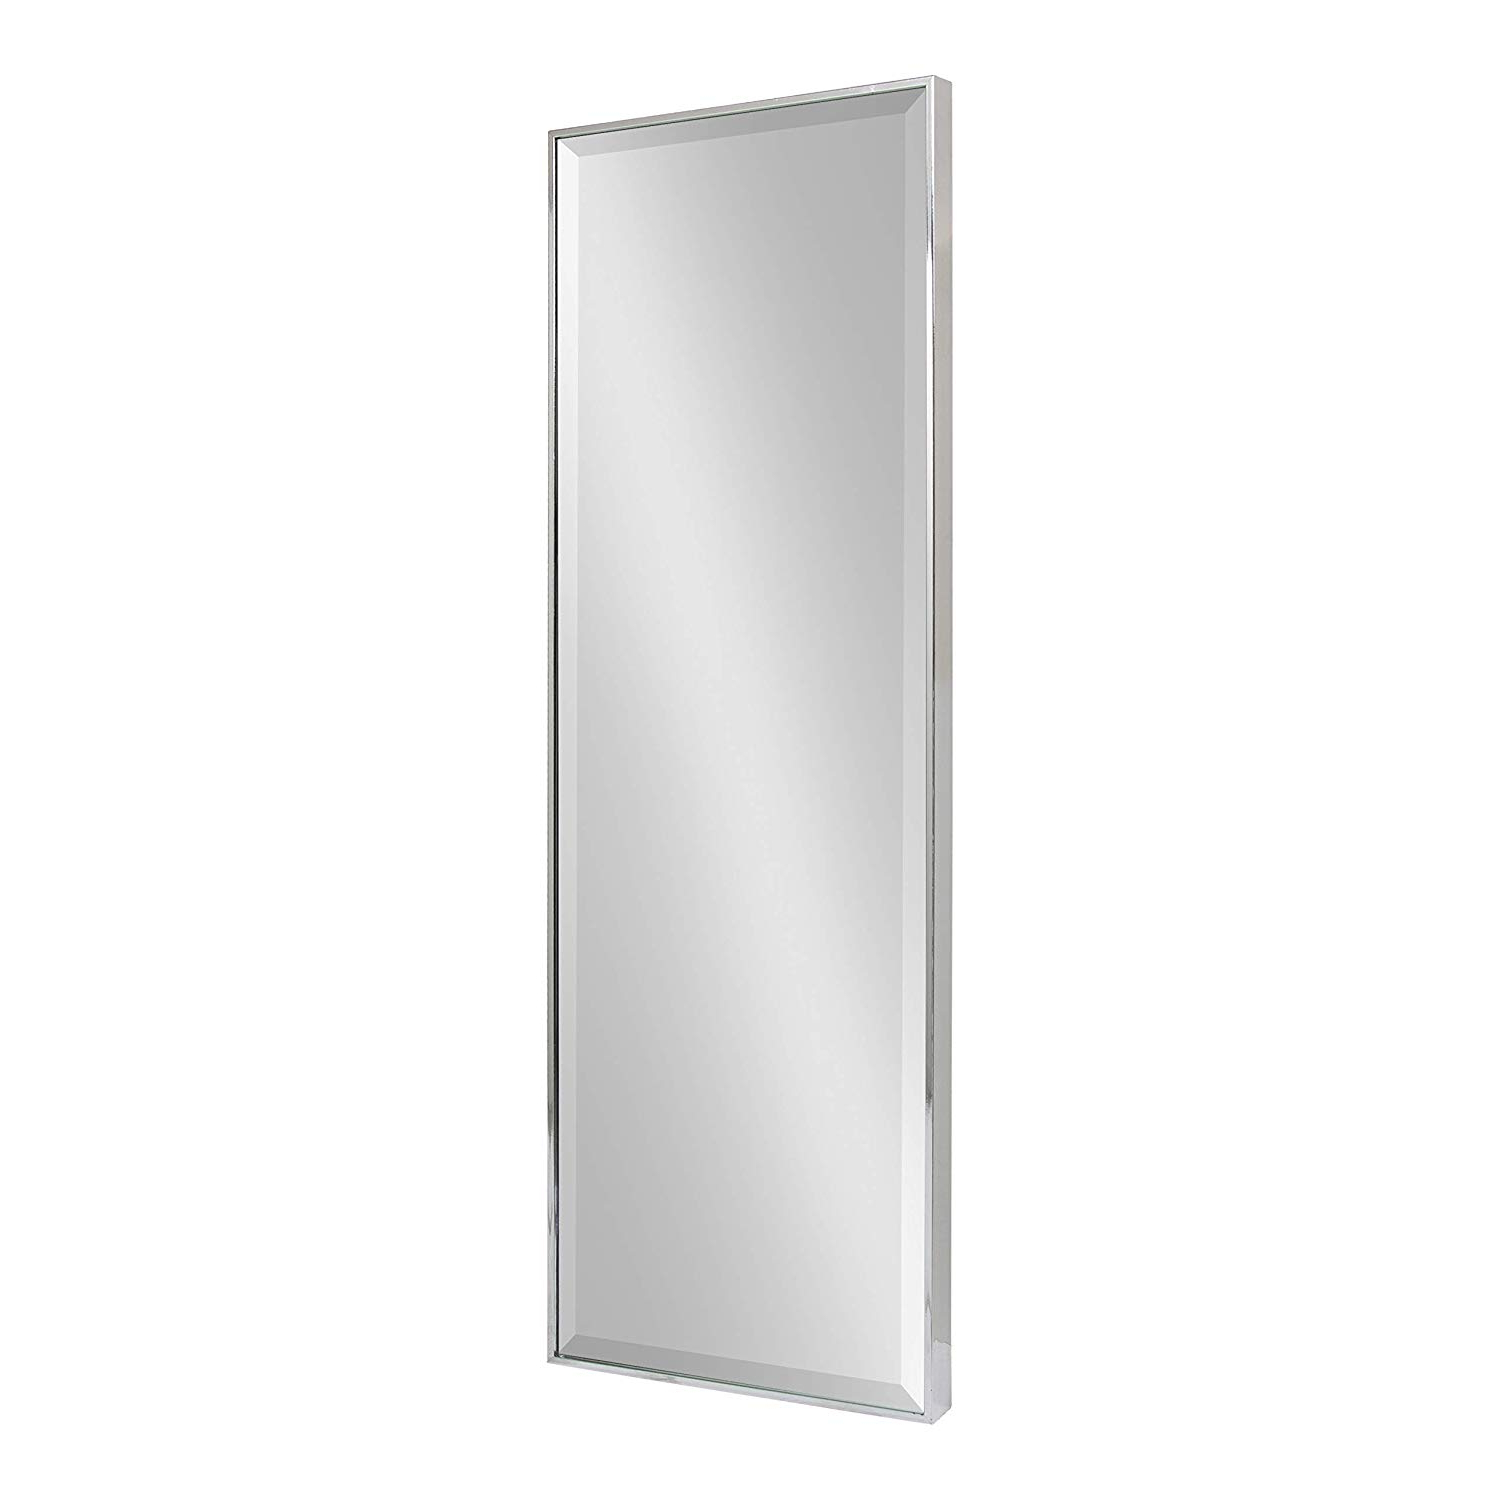 Widely Used Kate And Laurel Rhodes Decorative Frame Full Length Wall Mirror, 16.75x48. (View 10 of 20)